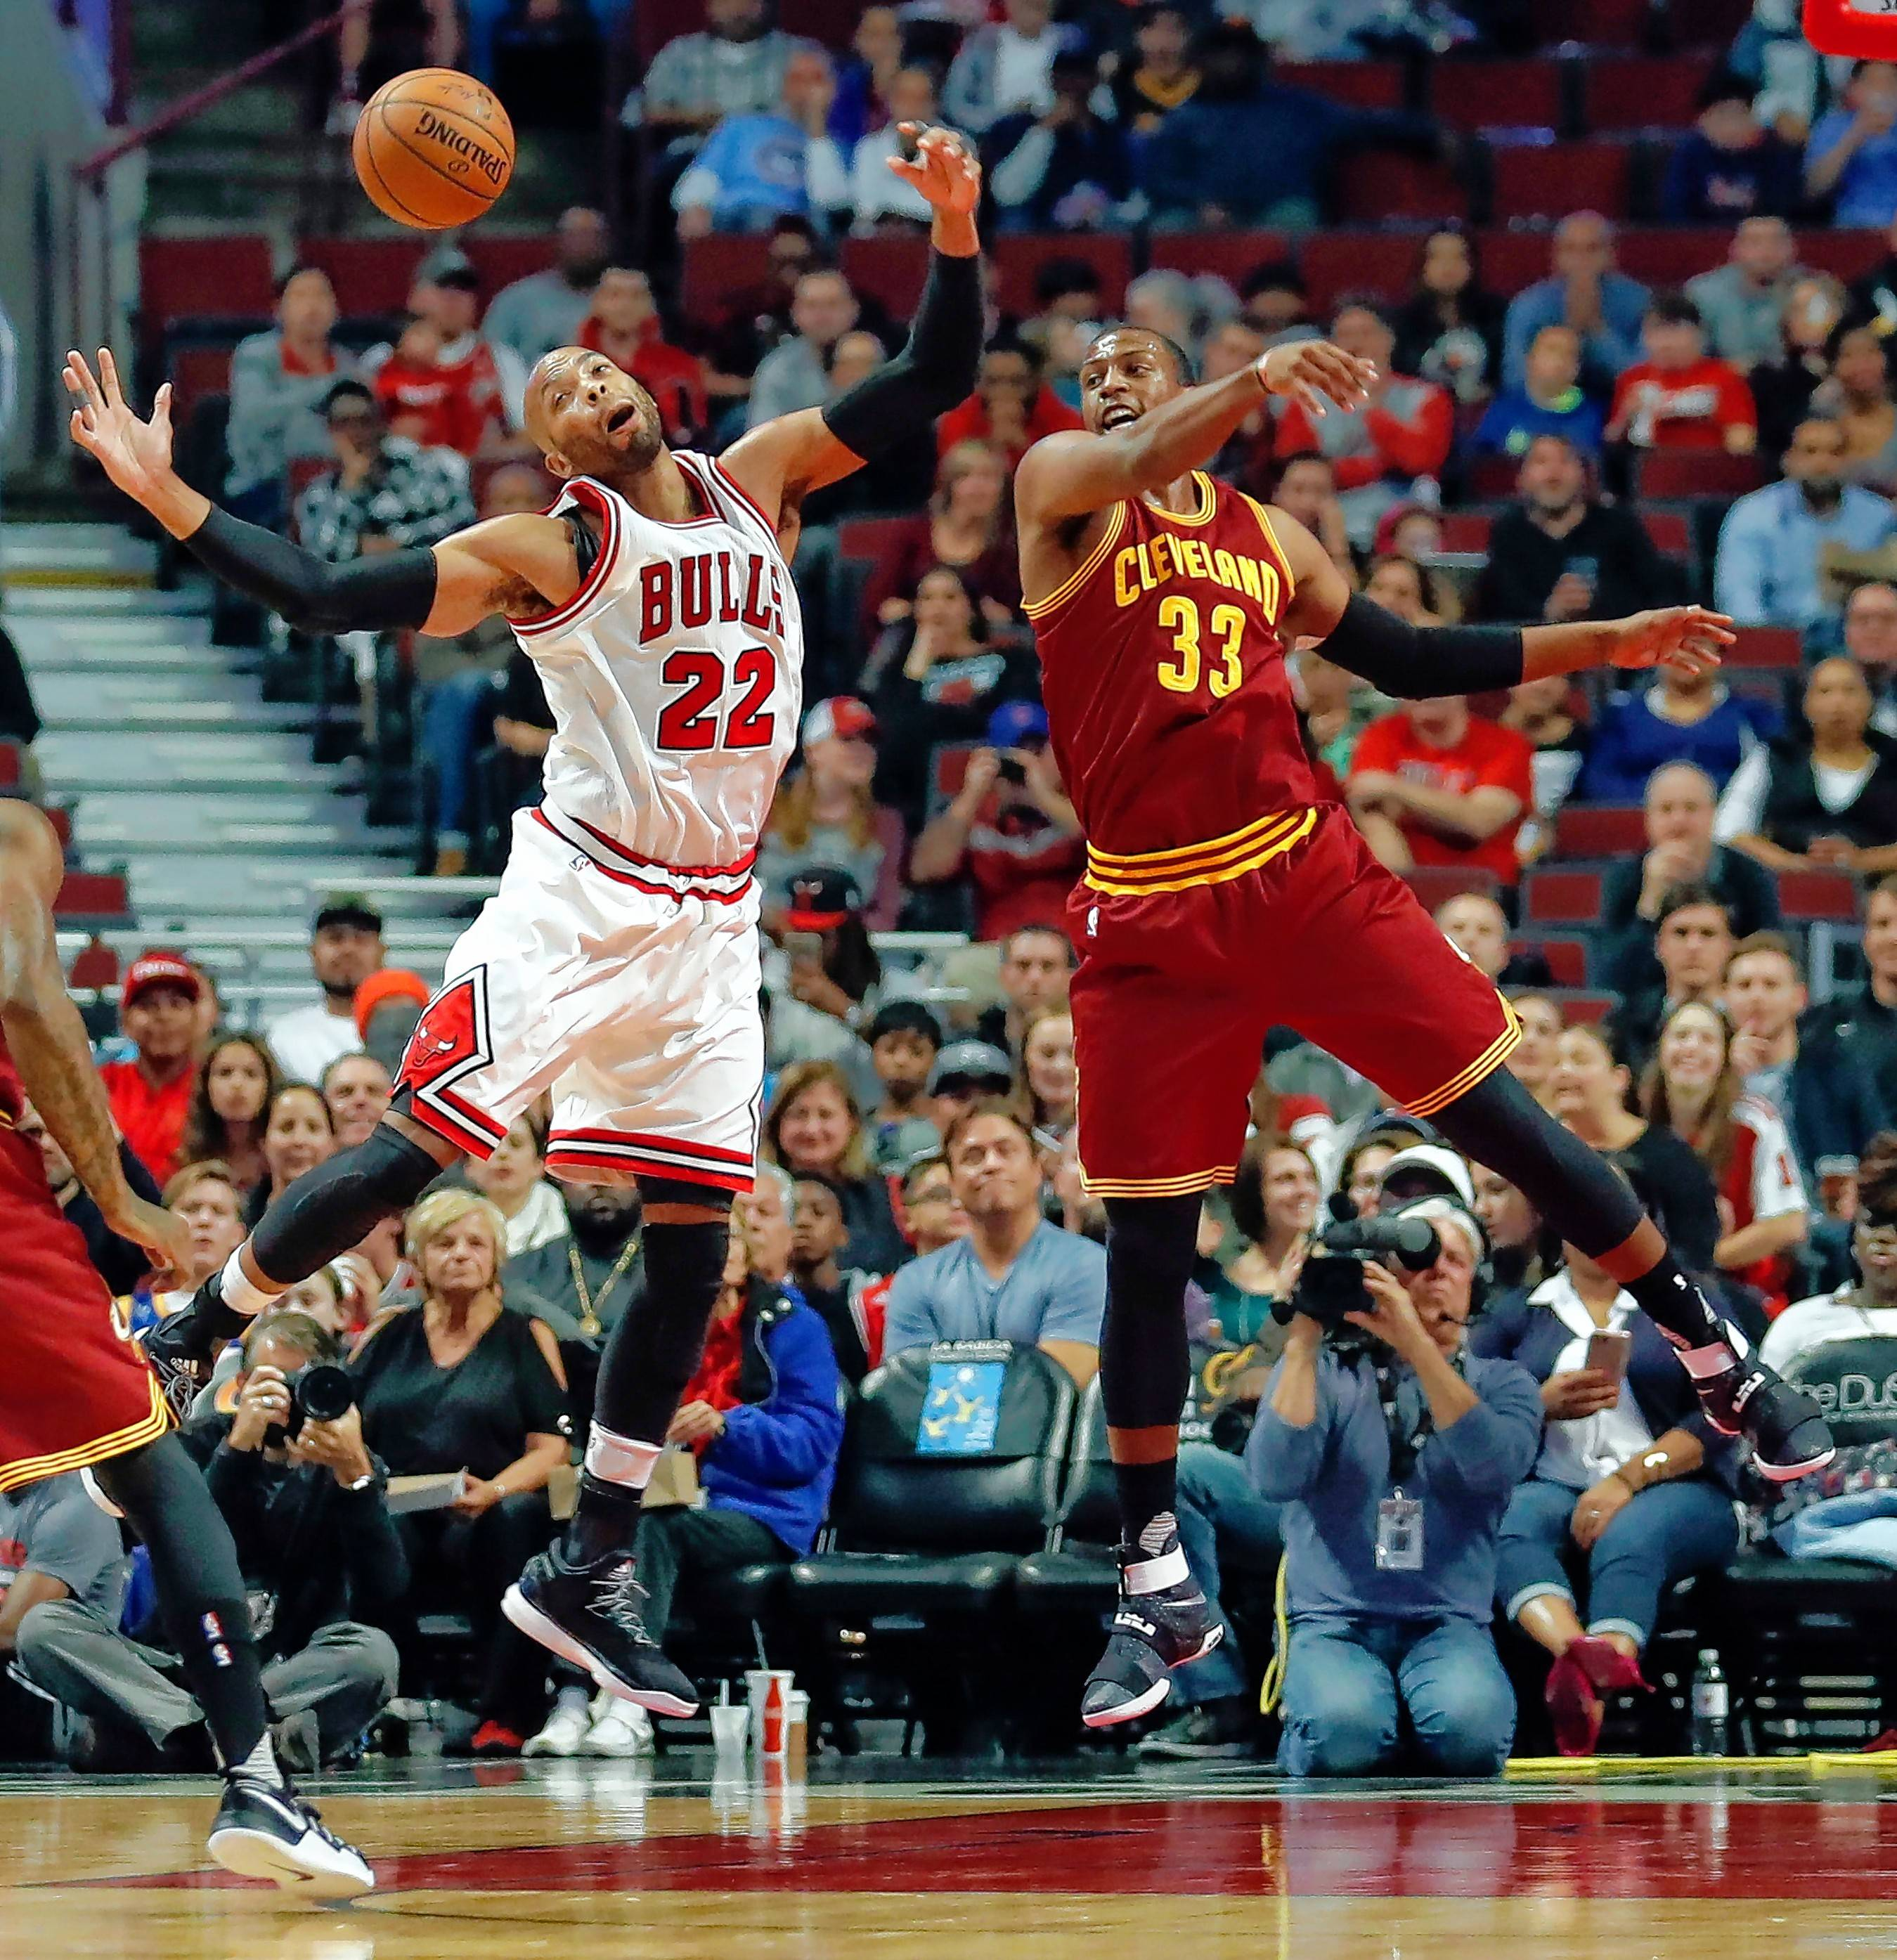 Chicago Bulls' Taj Gibson (22) was the Bulls' leading scorer during the preseason, averaging 13.8 points while shooting 64 percent. He also lead the team in rebounds with 7.7. But Gibson's place in the starting lineup for the regular season is not yet locked in.